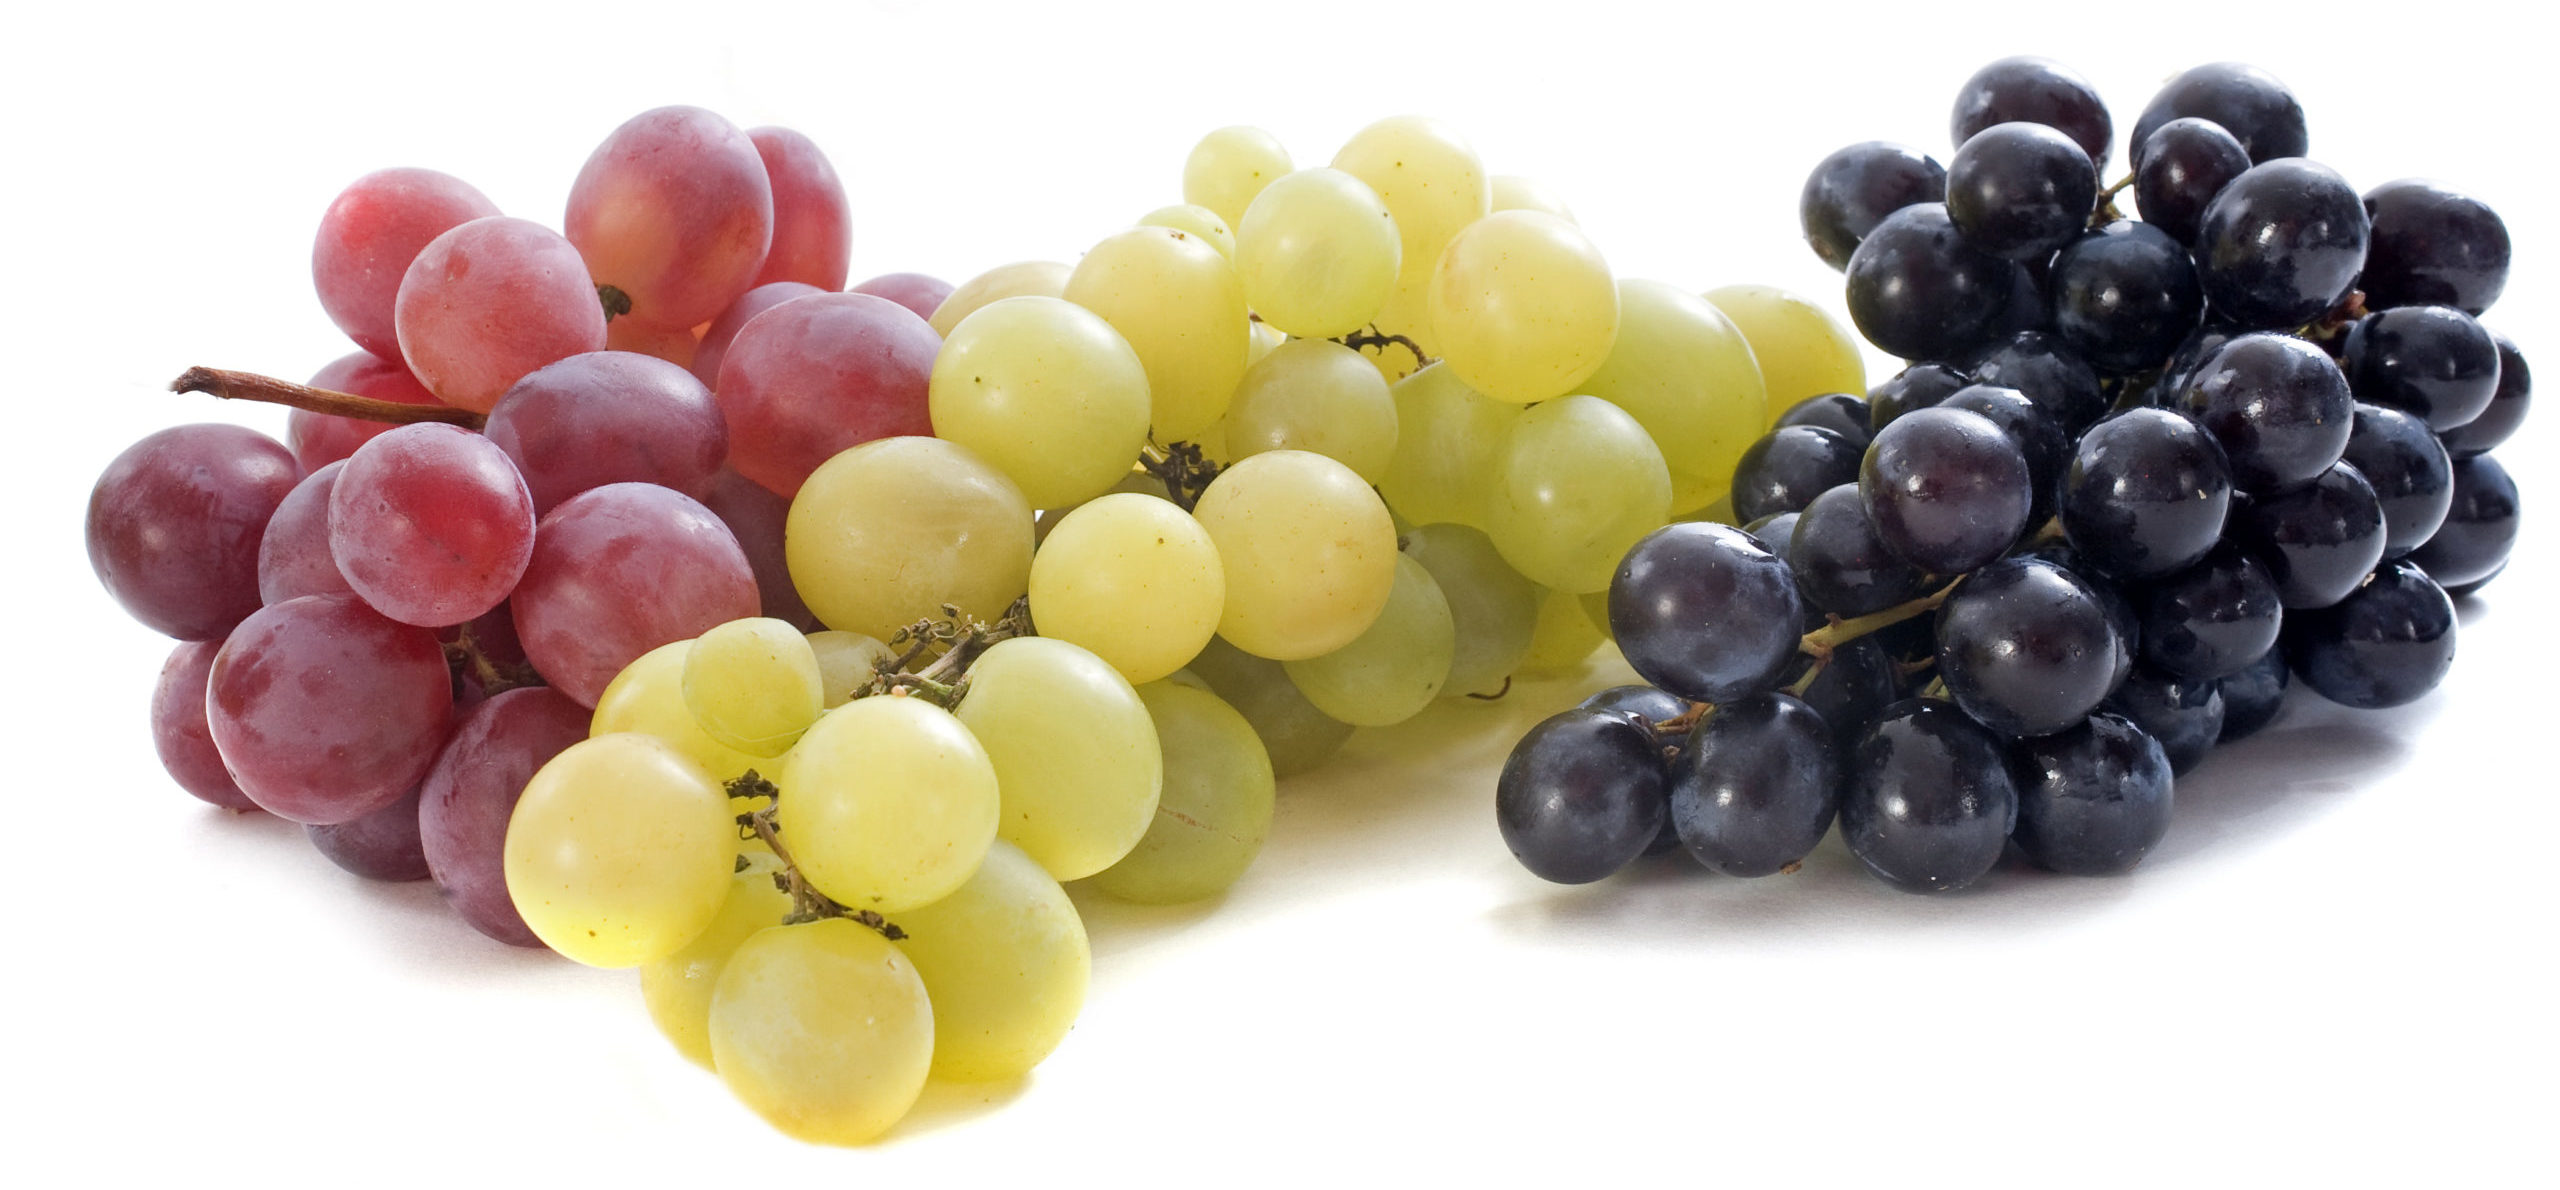 Organic Grapes - $2.29/lb (While Supplies Last)